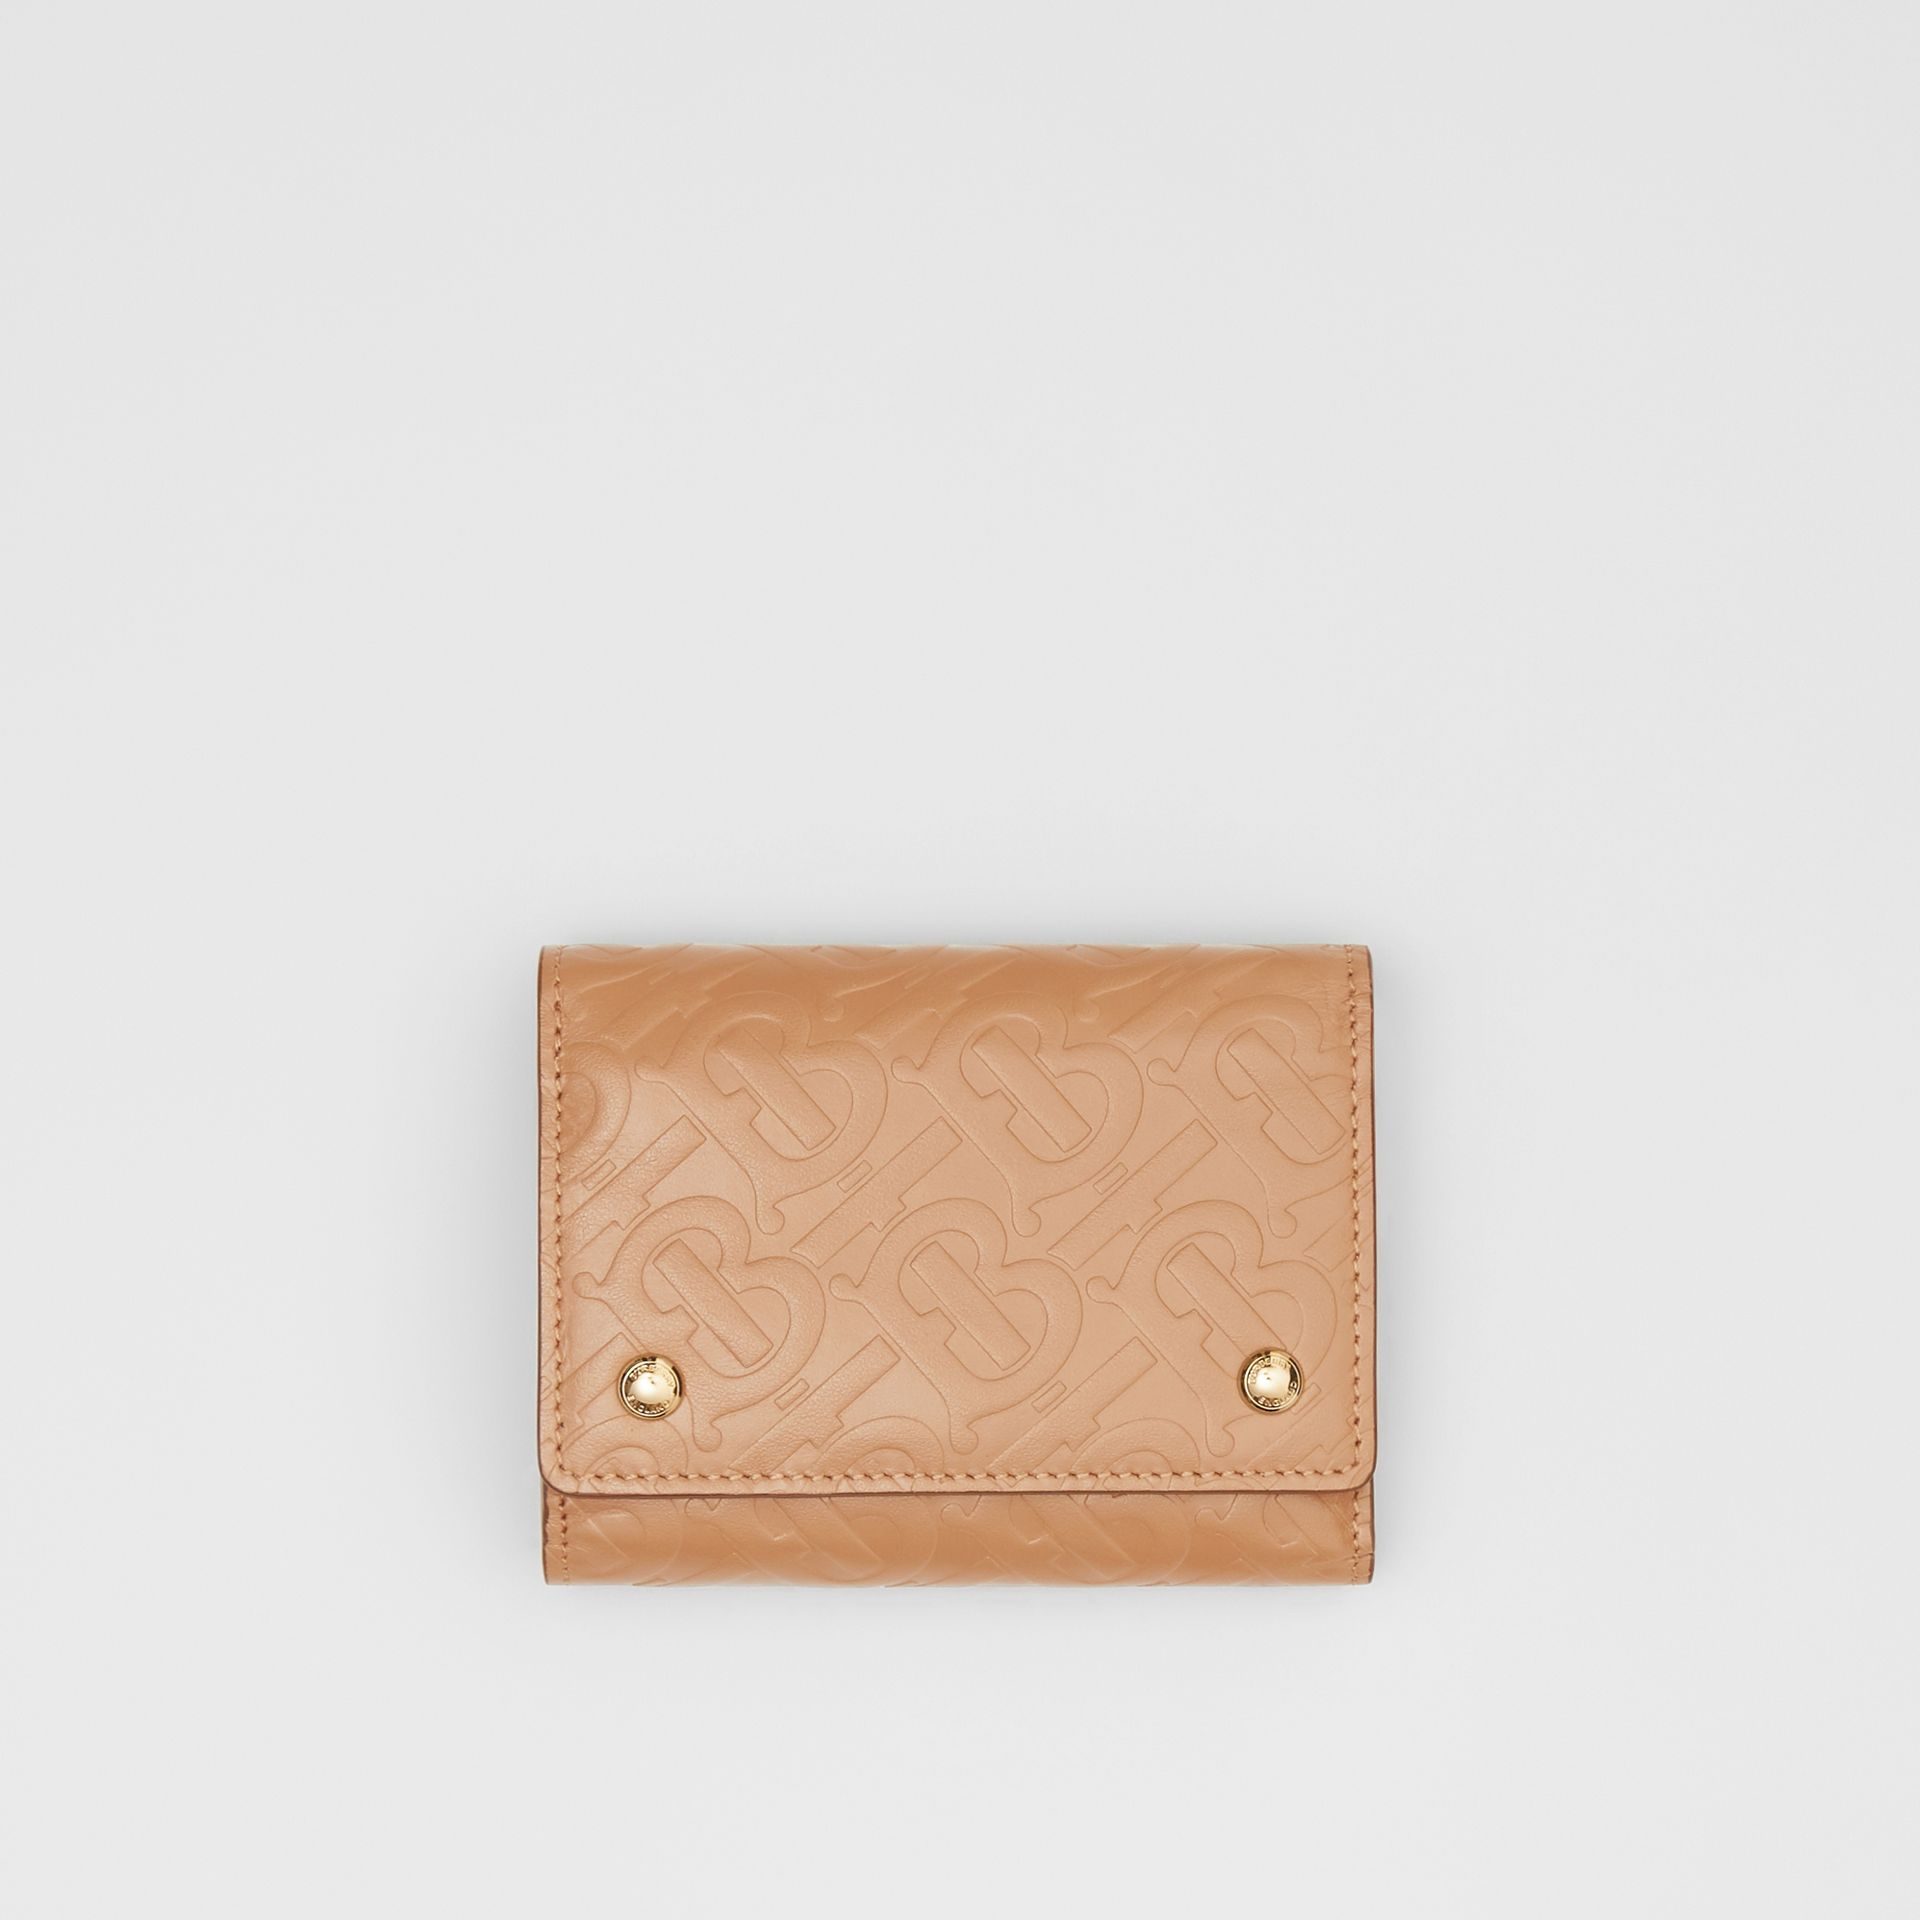 Small Monogram Leather Folding Wallet in Light Camel - Women | Burberry Singapore - gallery image 0